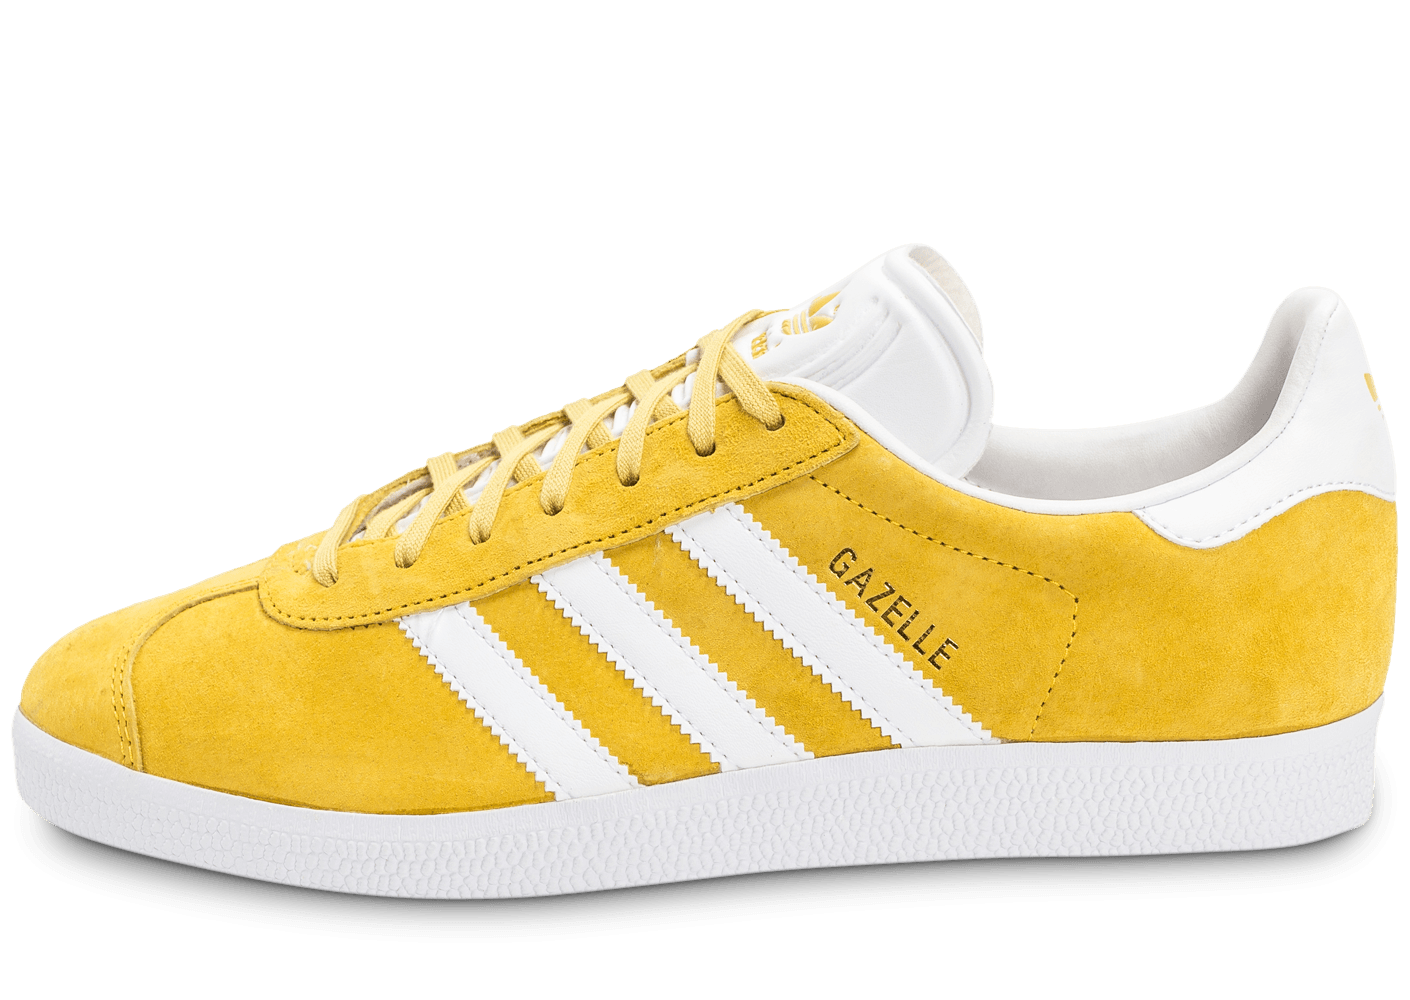 adidas gazelle jaune chaussures homme chausport. Black Bedroom Furniture Sets. Home Design Ideas